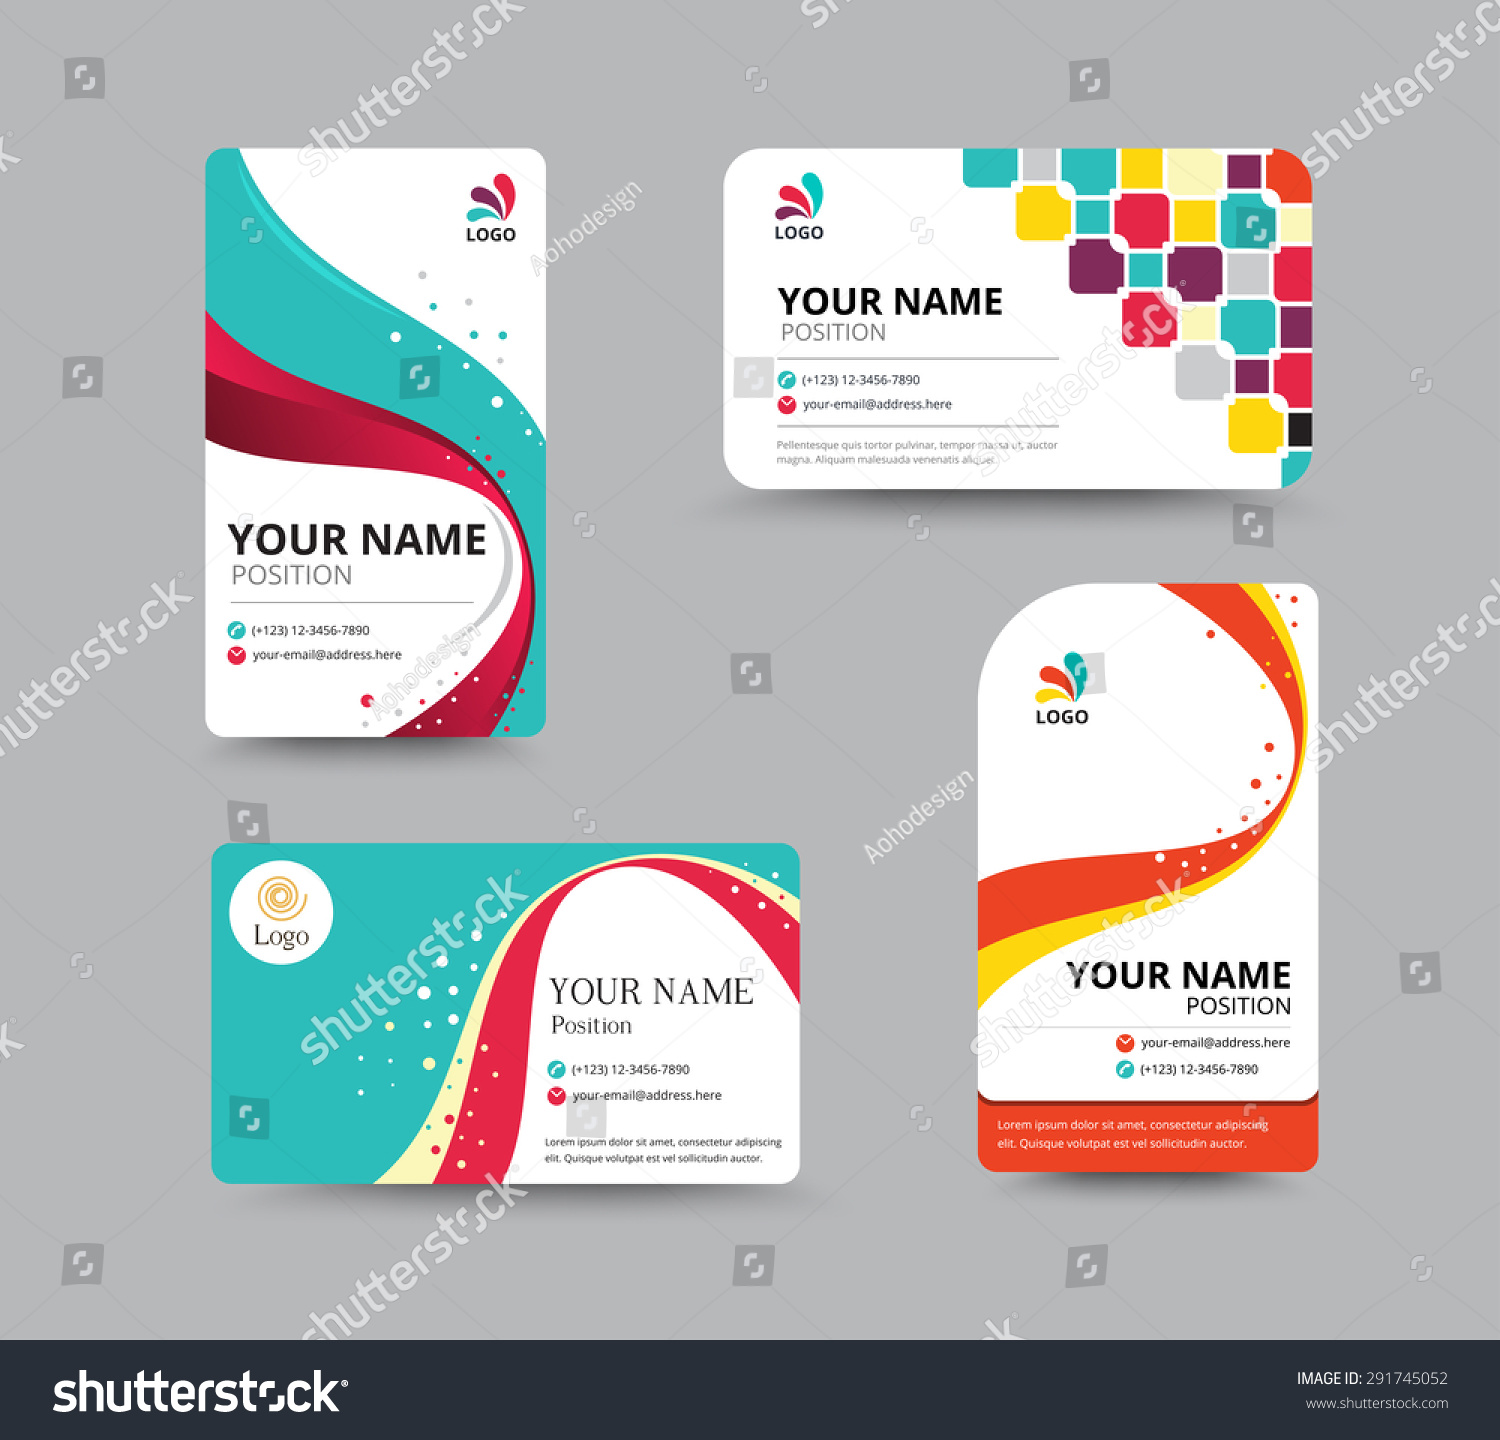 Business Card Template Design Floral Concept Stock Vector ...